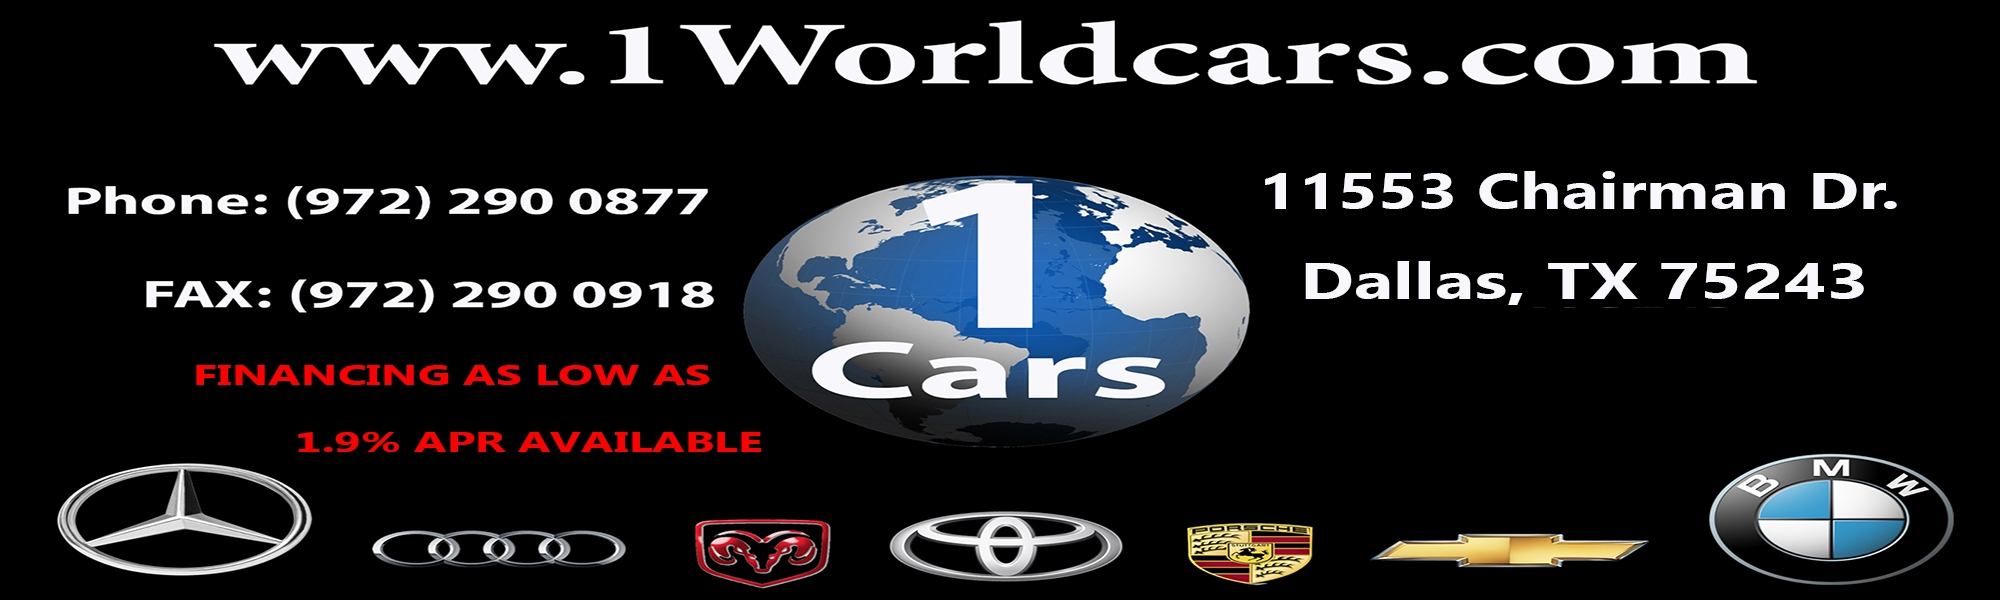 ONE WORLD CARS. (972) 290-0877